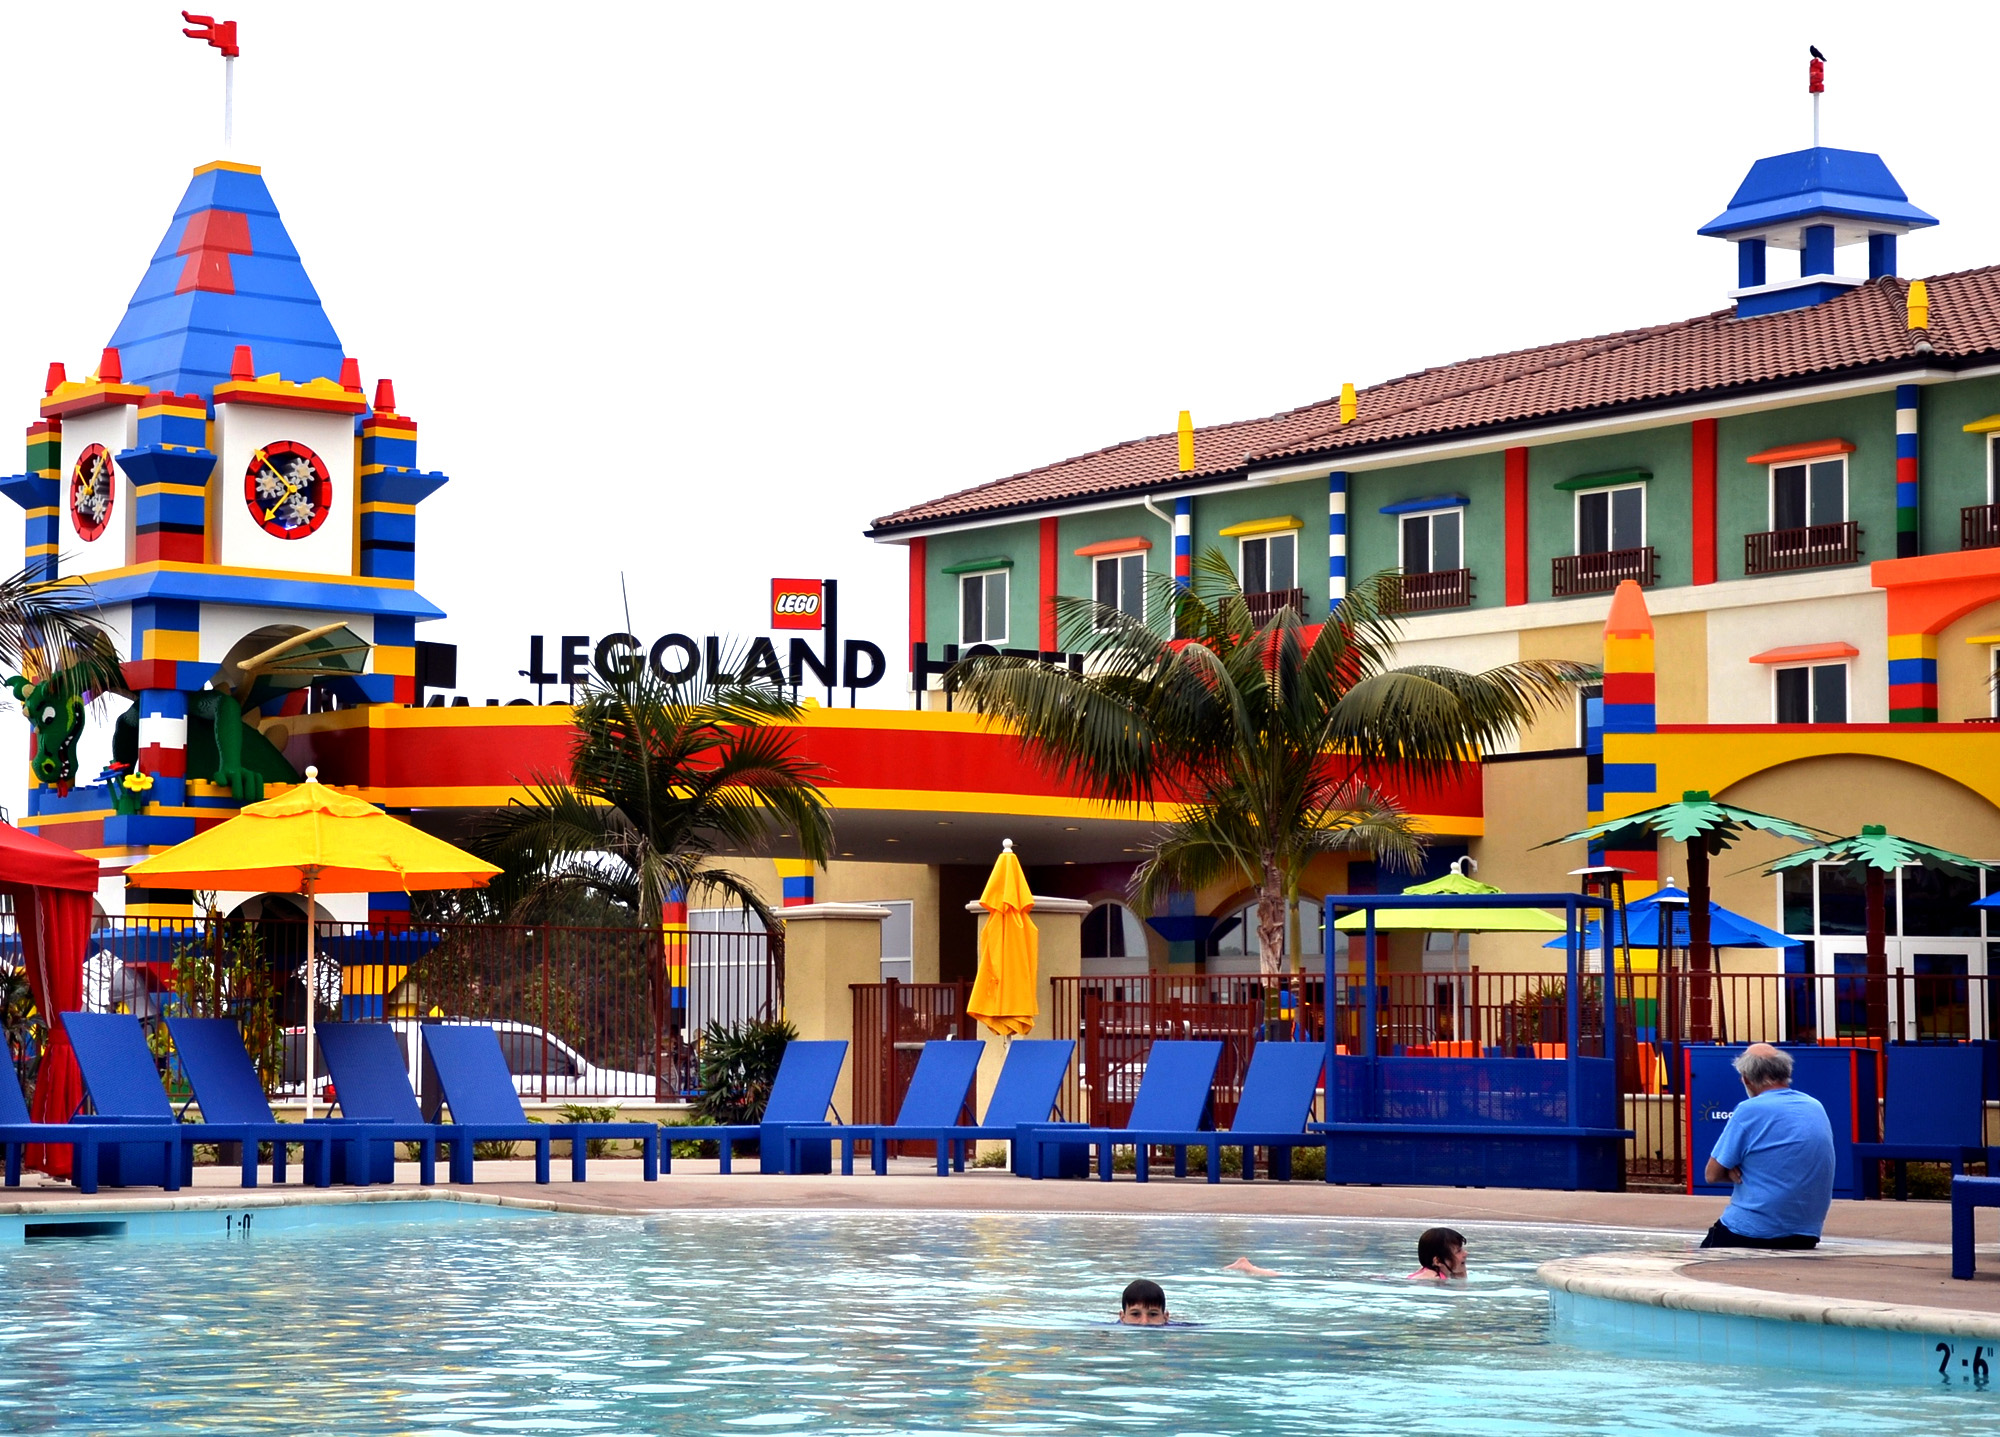 Legoland theme park and hotel is built for kids